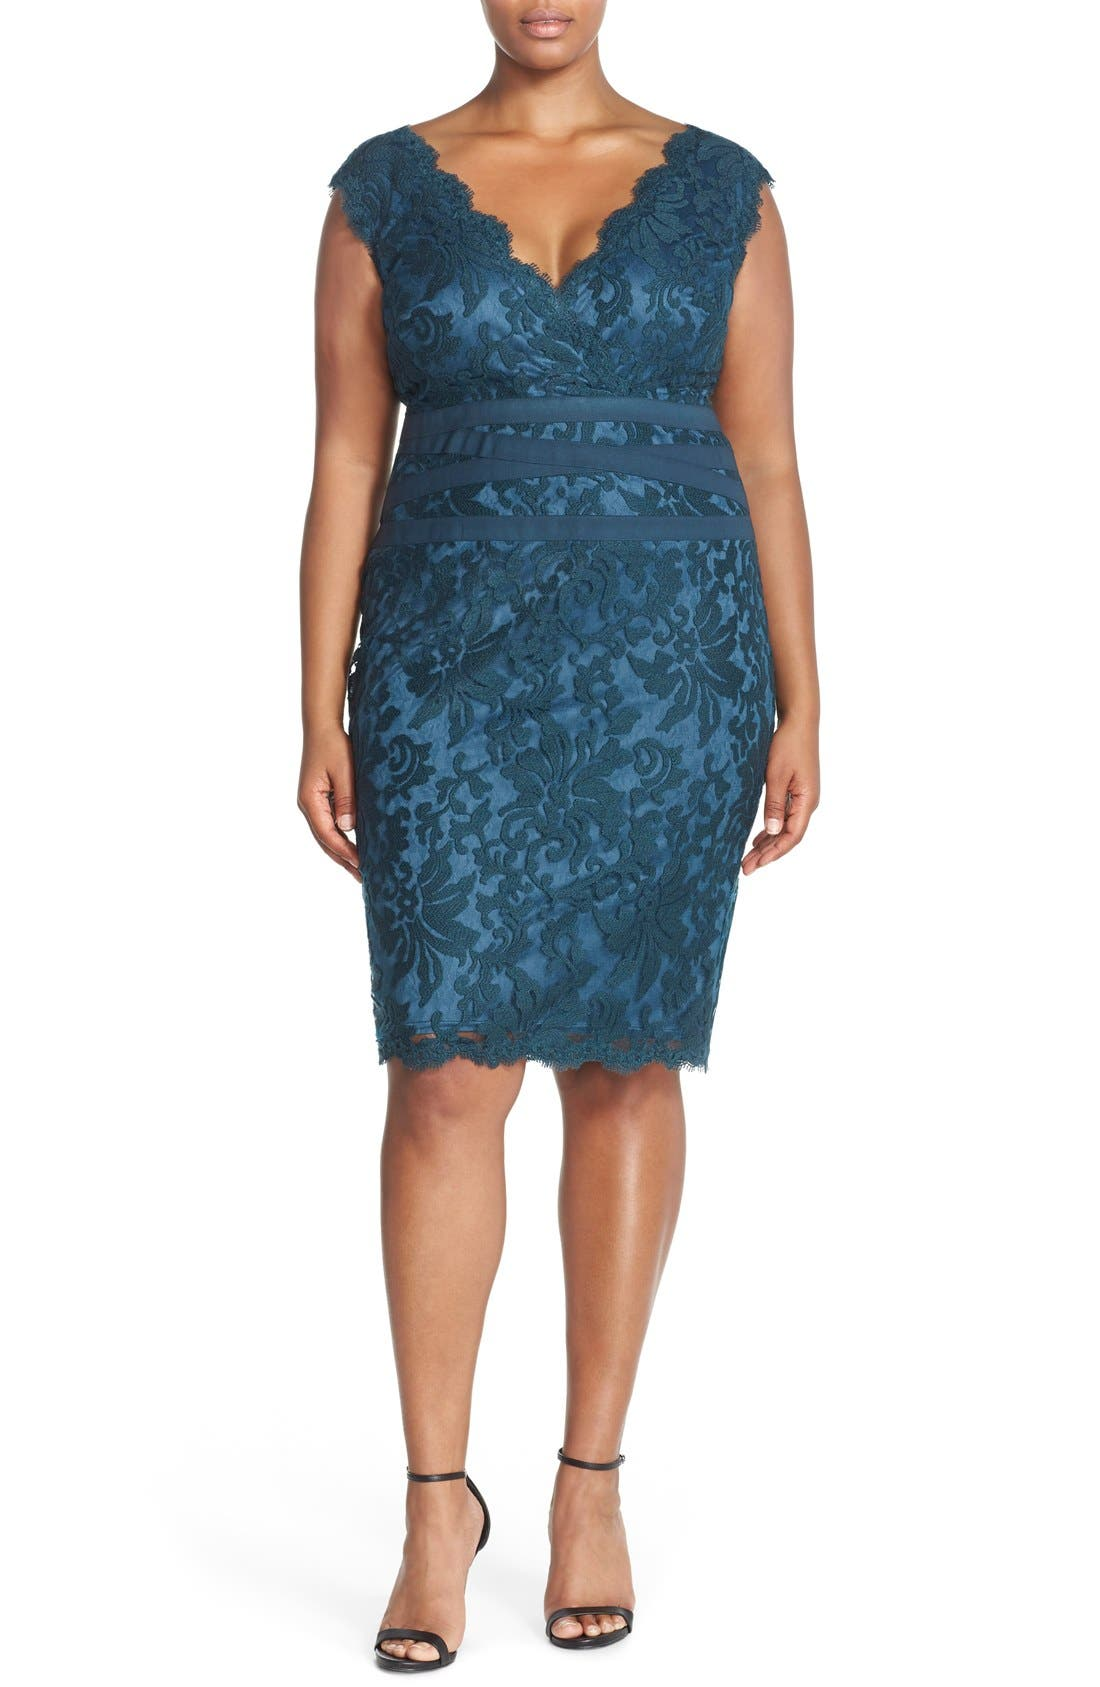 Alternate Image 1 Selected - Tadashi Shoji Embroidered Lace Sheath Dress (Plus Size)